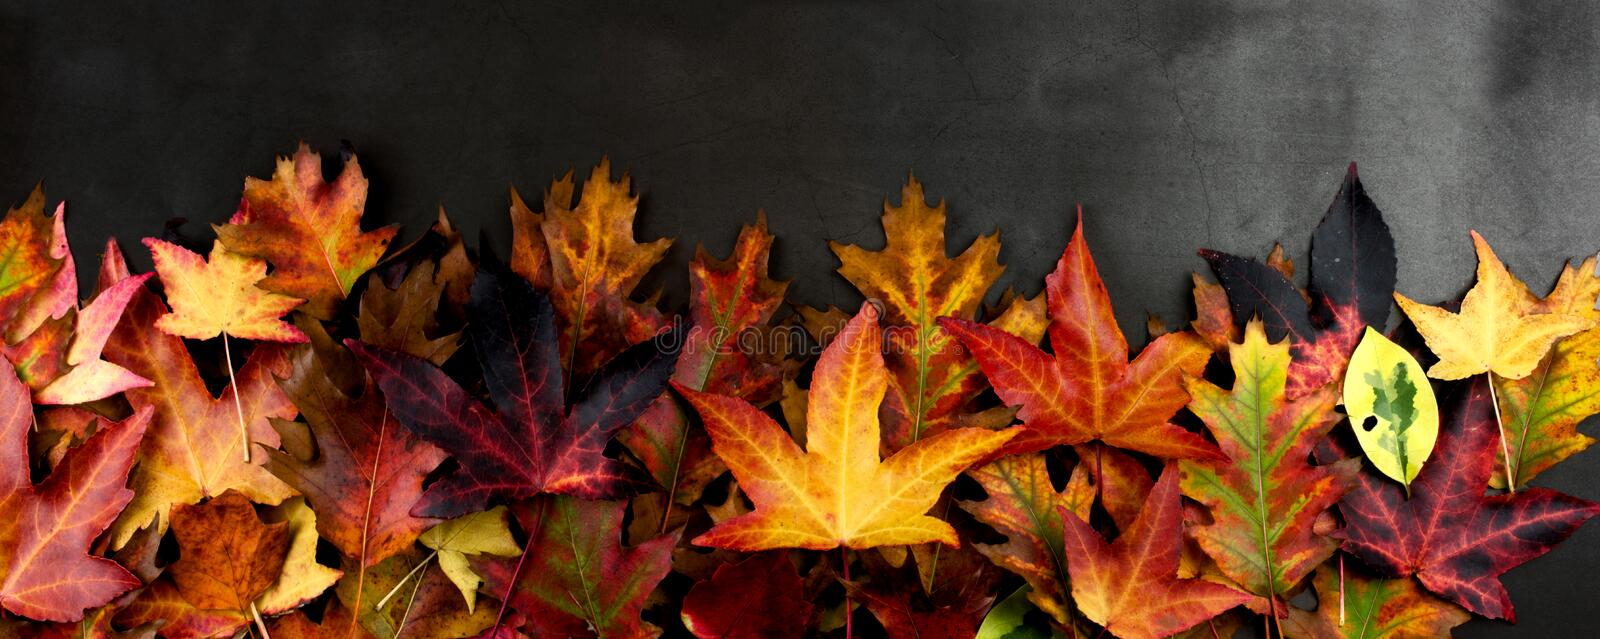 AUTUMN BACKGROUNDS, FRAME OR BORDER OF COLORFUL FALL LEAVES. HIGH ANGLE VIEW AGAINST DARK BACKGROUND. stock photo